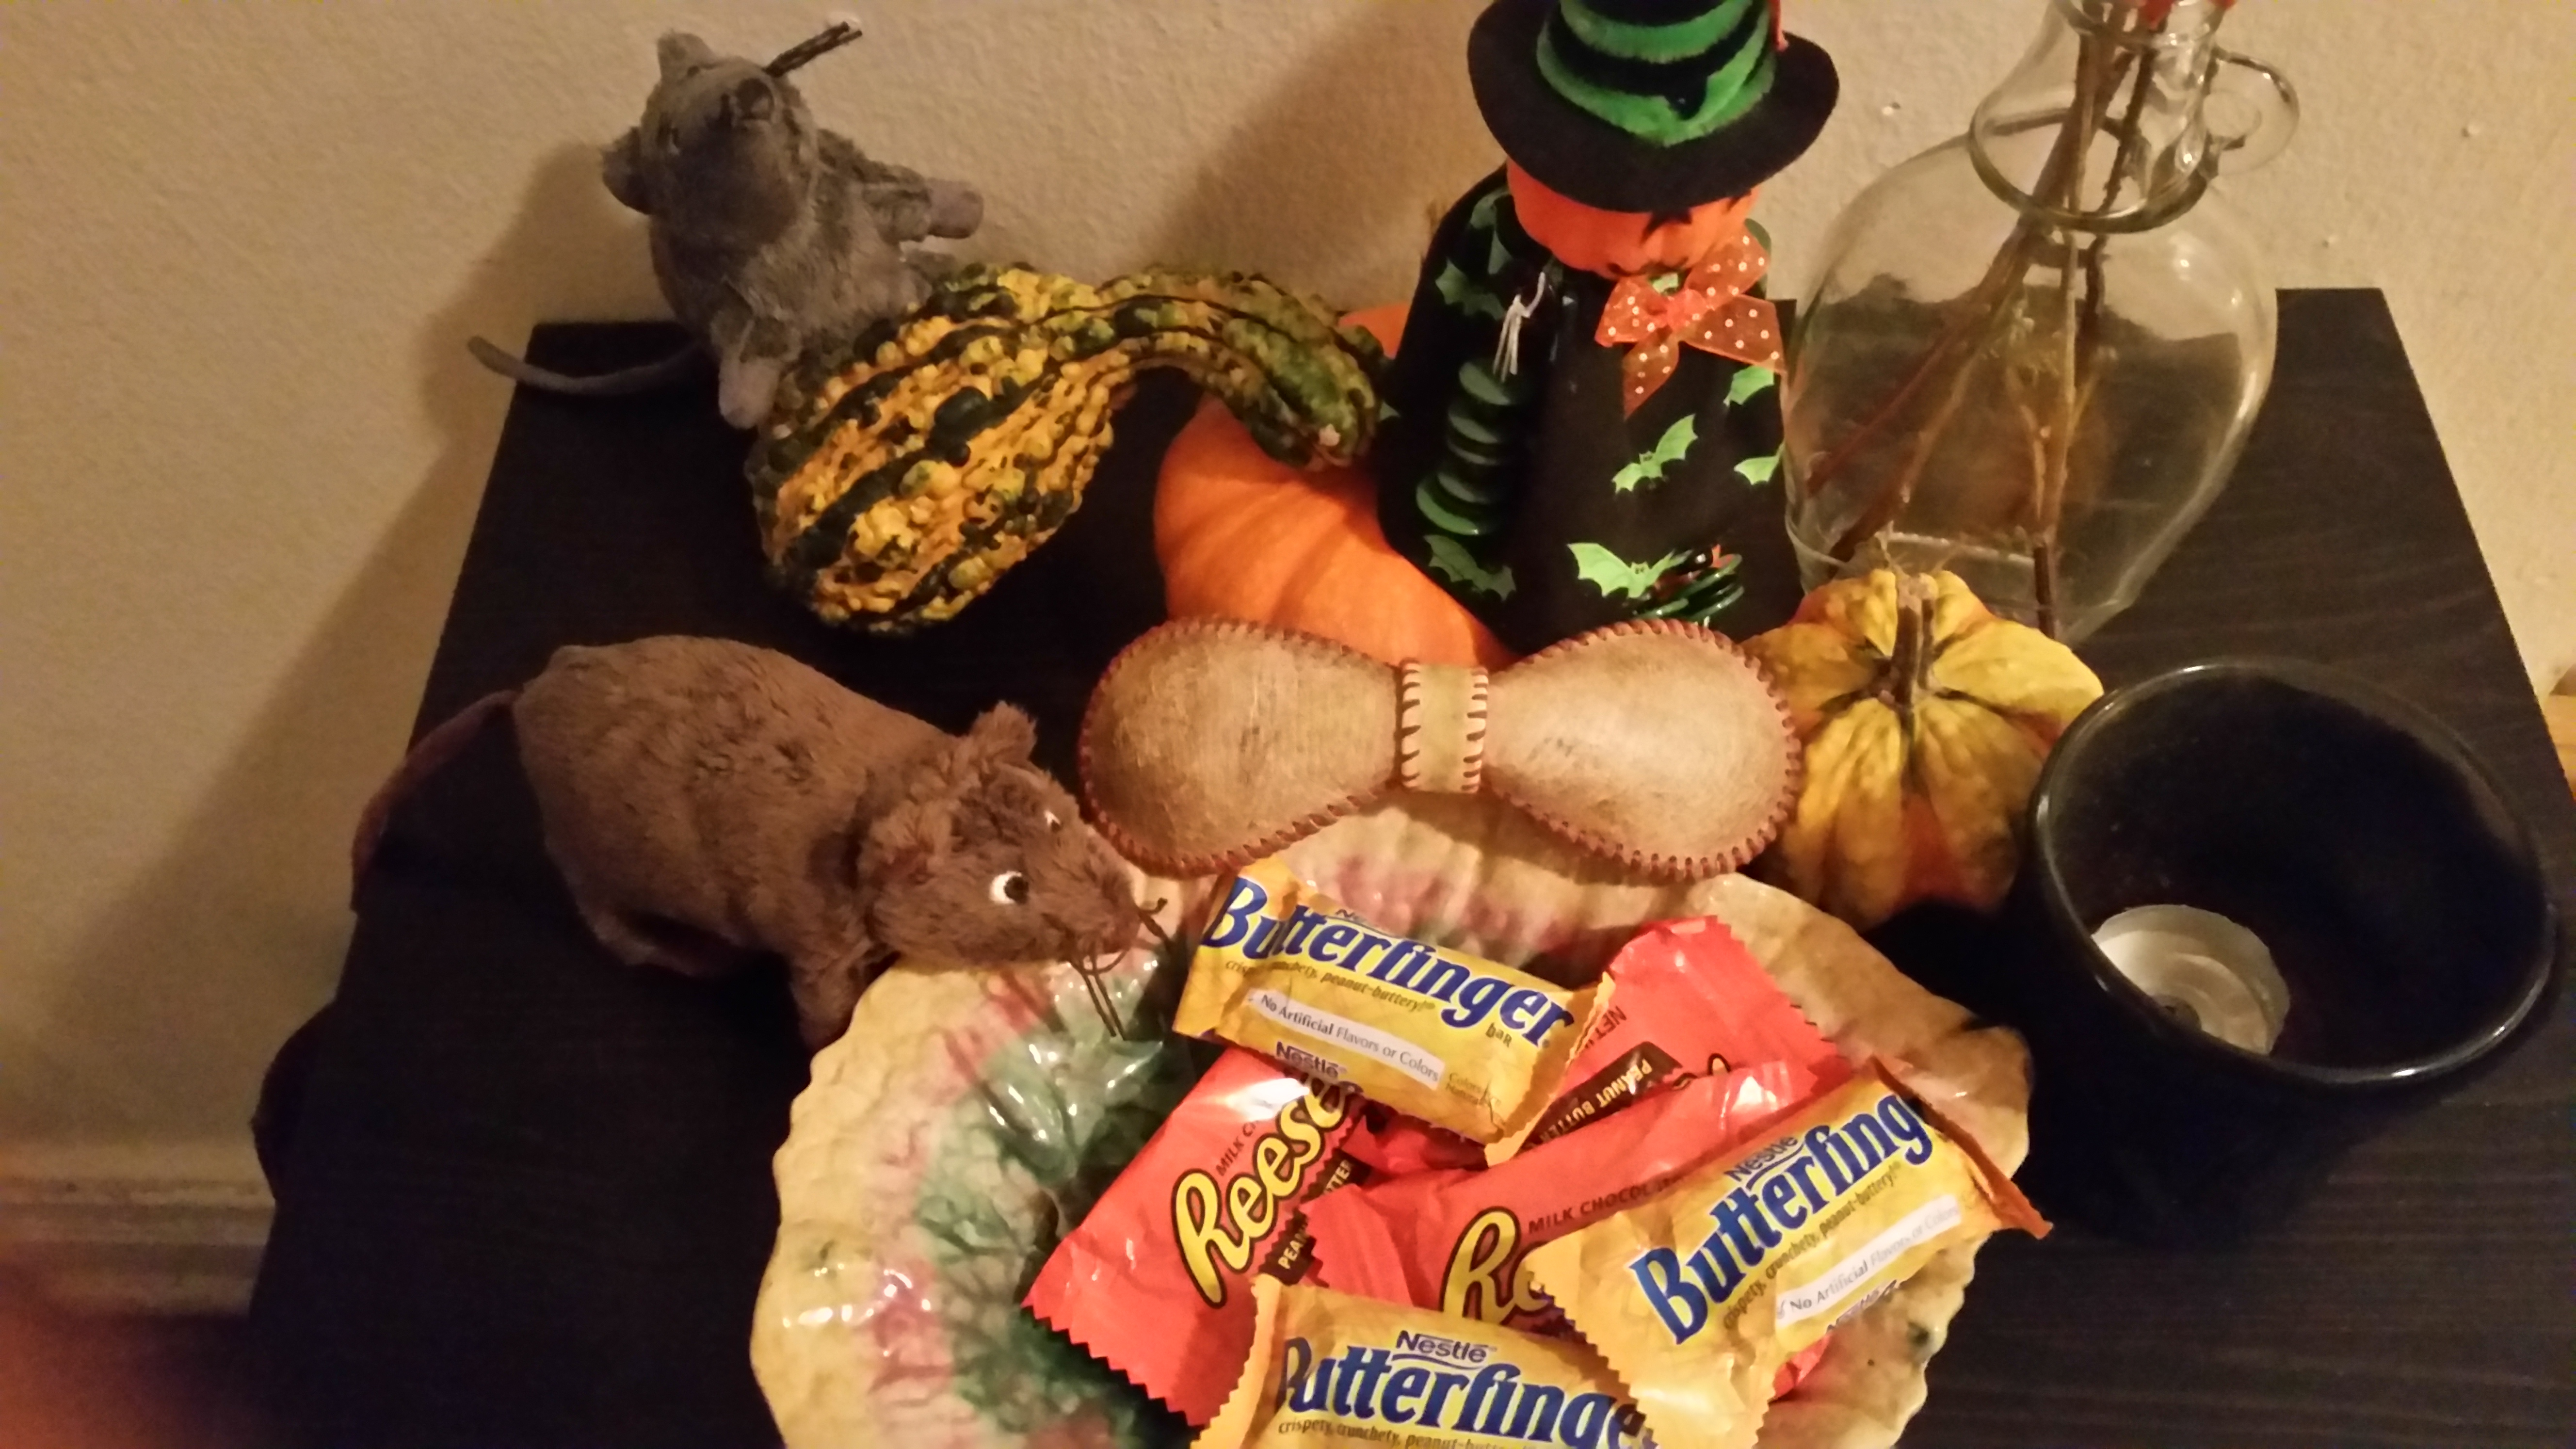 The bow tie is the prize. I keep the candy and mice.